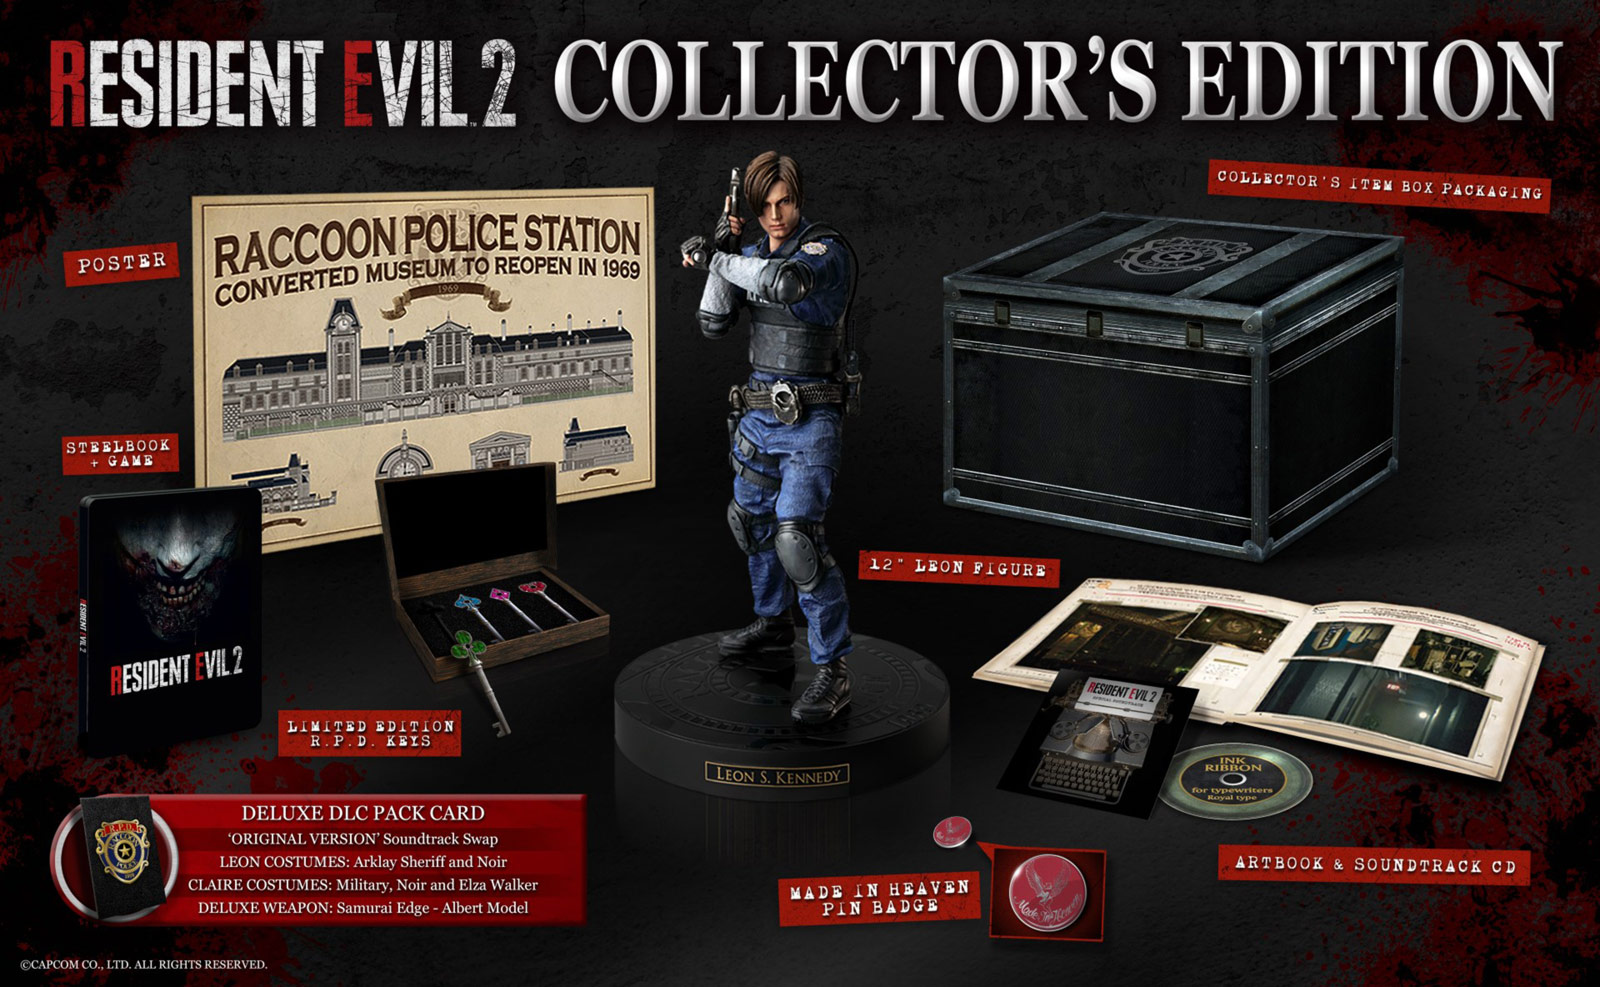 Resident Evil 2 Remake: Collector's Edition